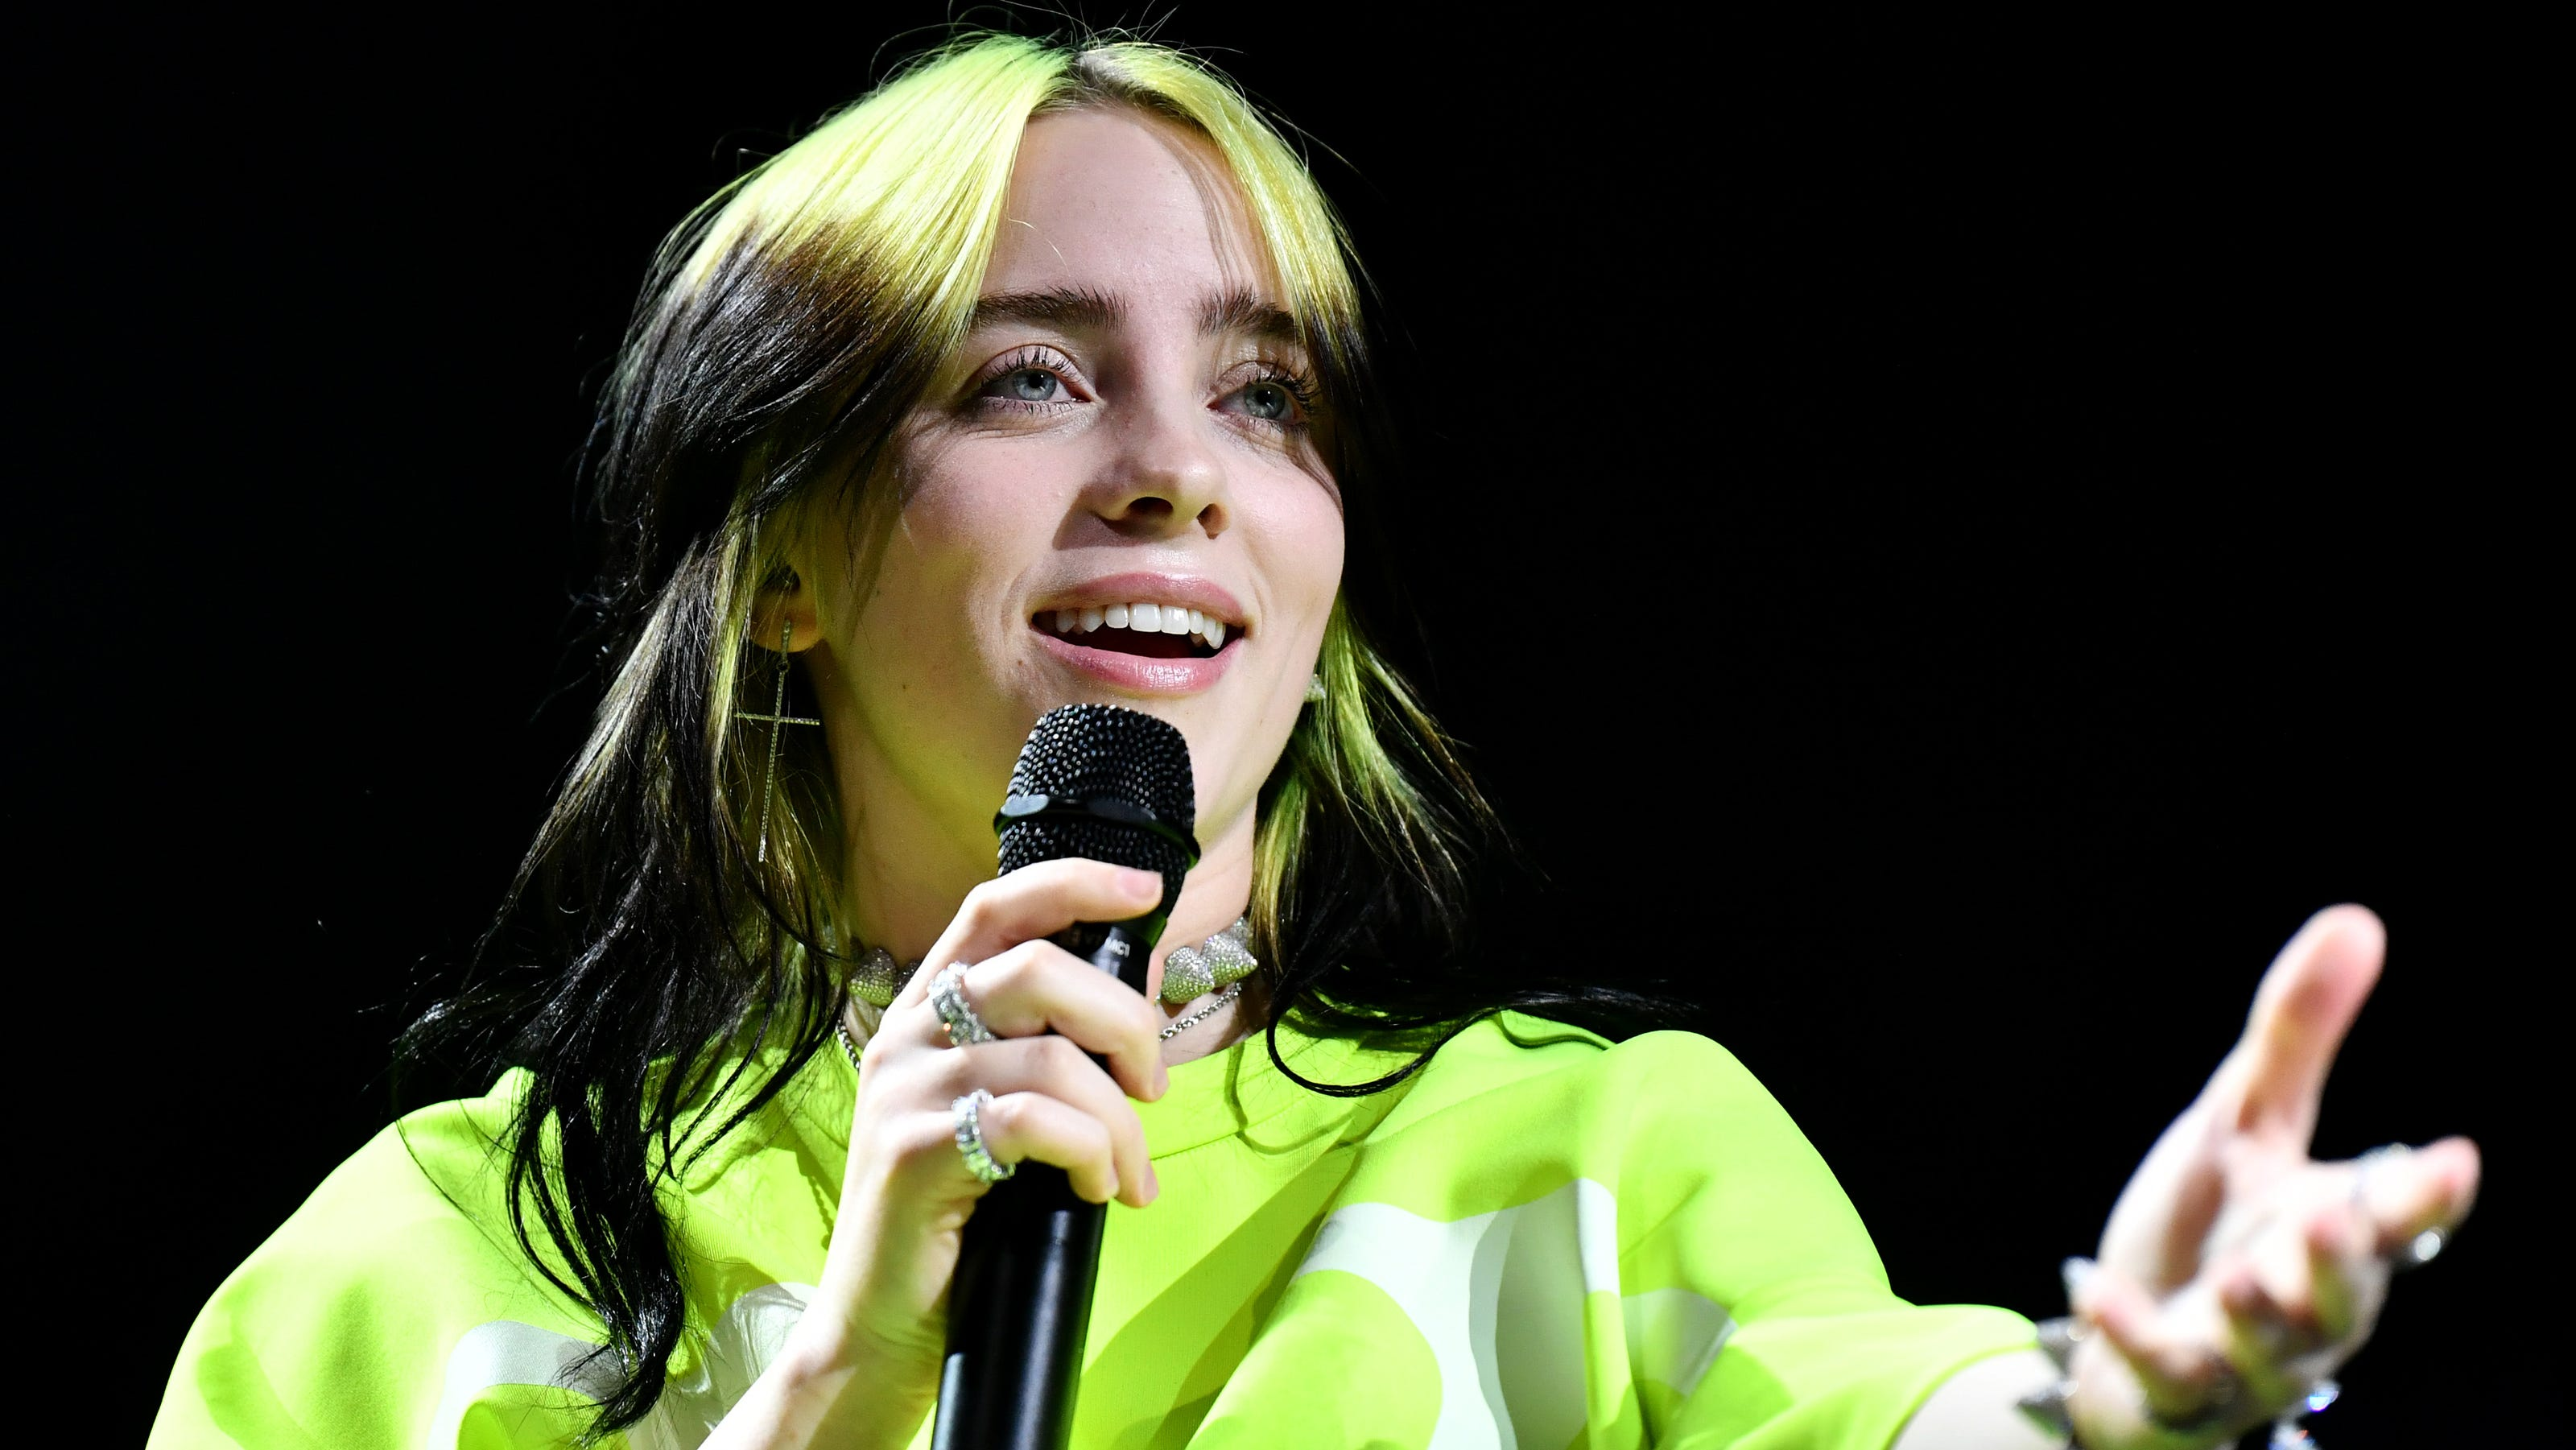 Who is Billie Eilish? Grammys 2020 biggest winner: Everything to know